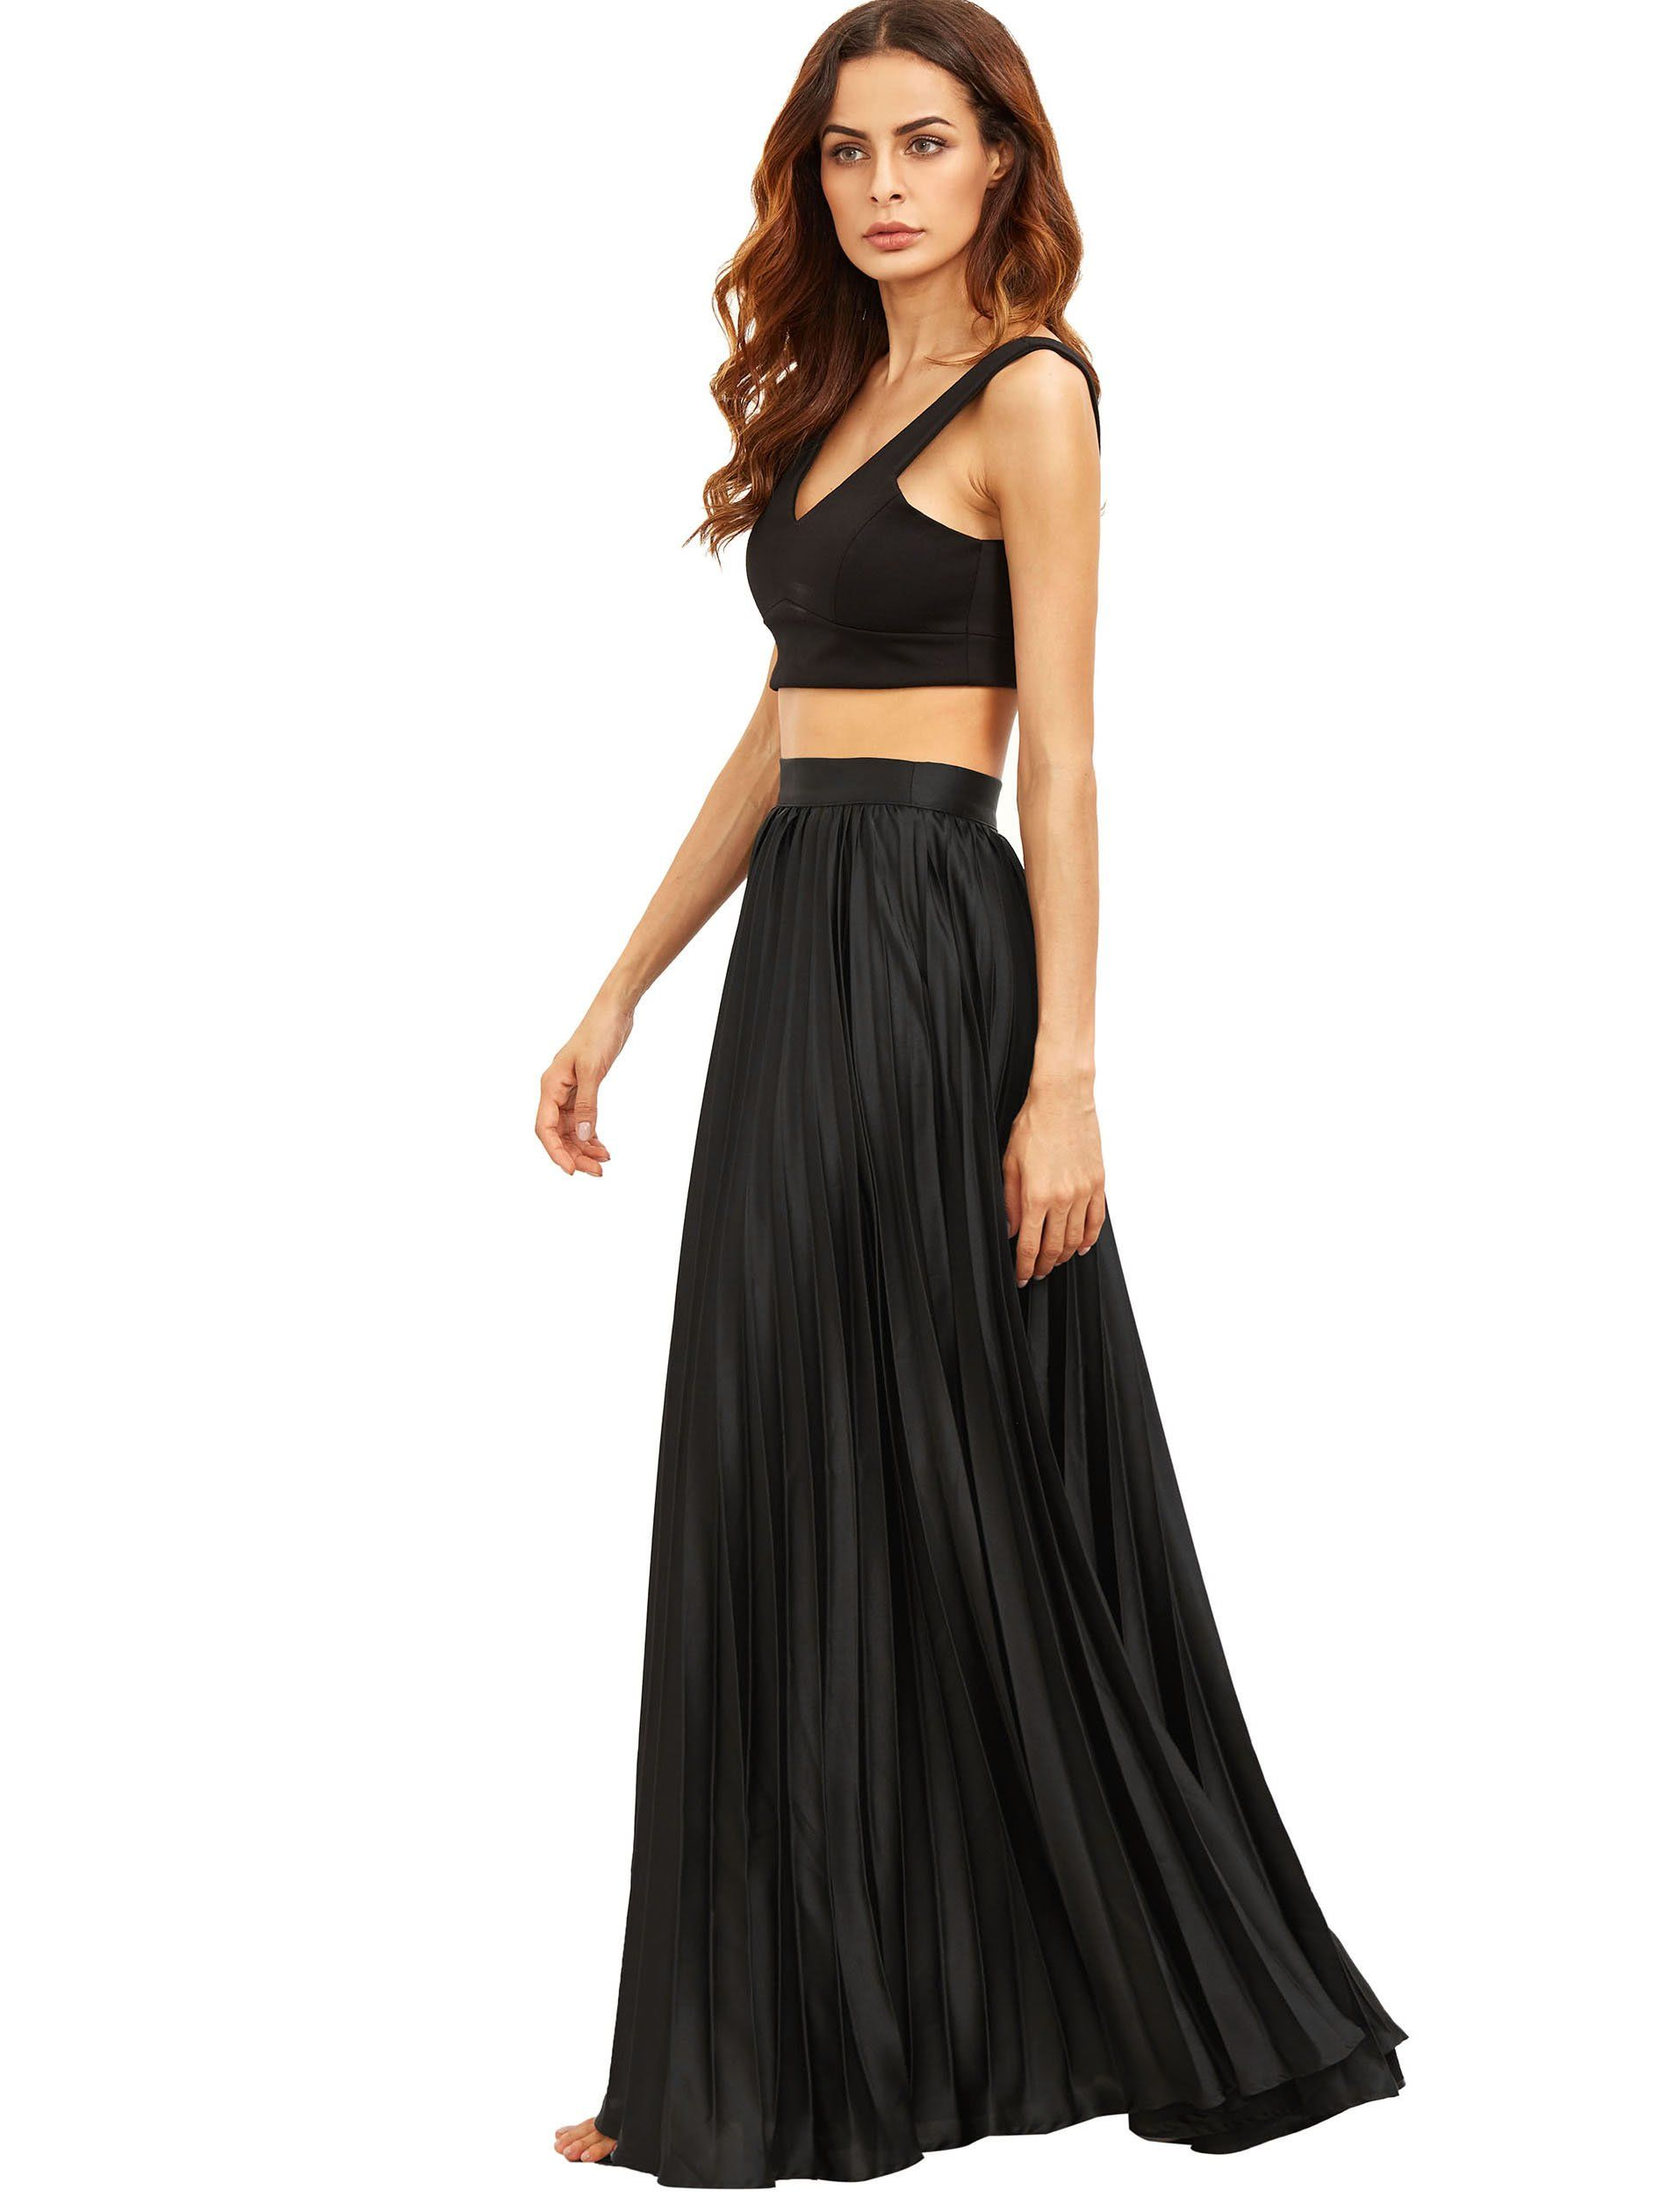 maxi widow collections shoes length thumbnail products store and online stylo floors clothing skirts original skirt black floor